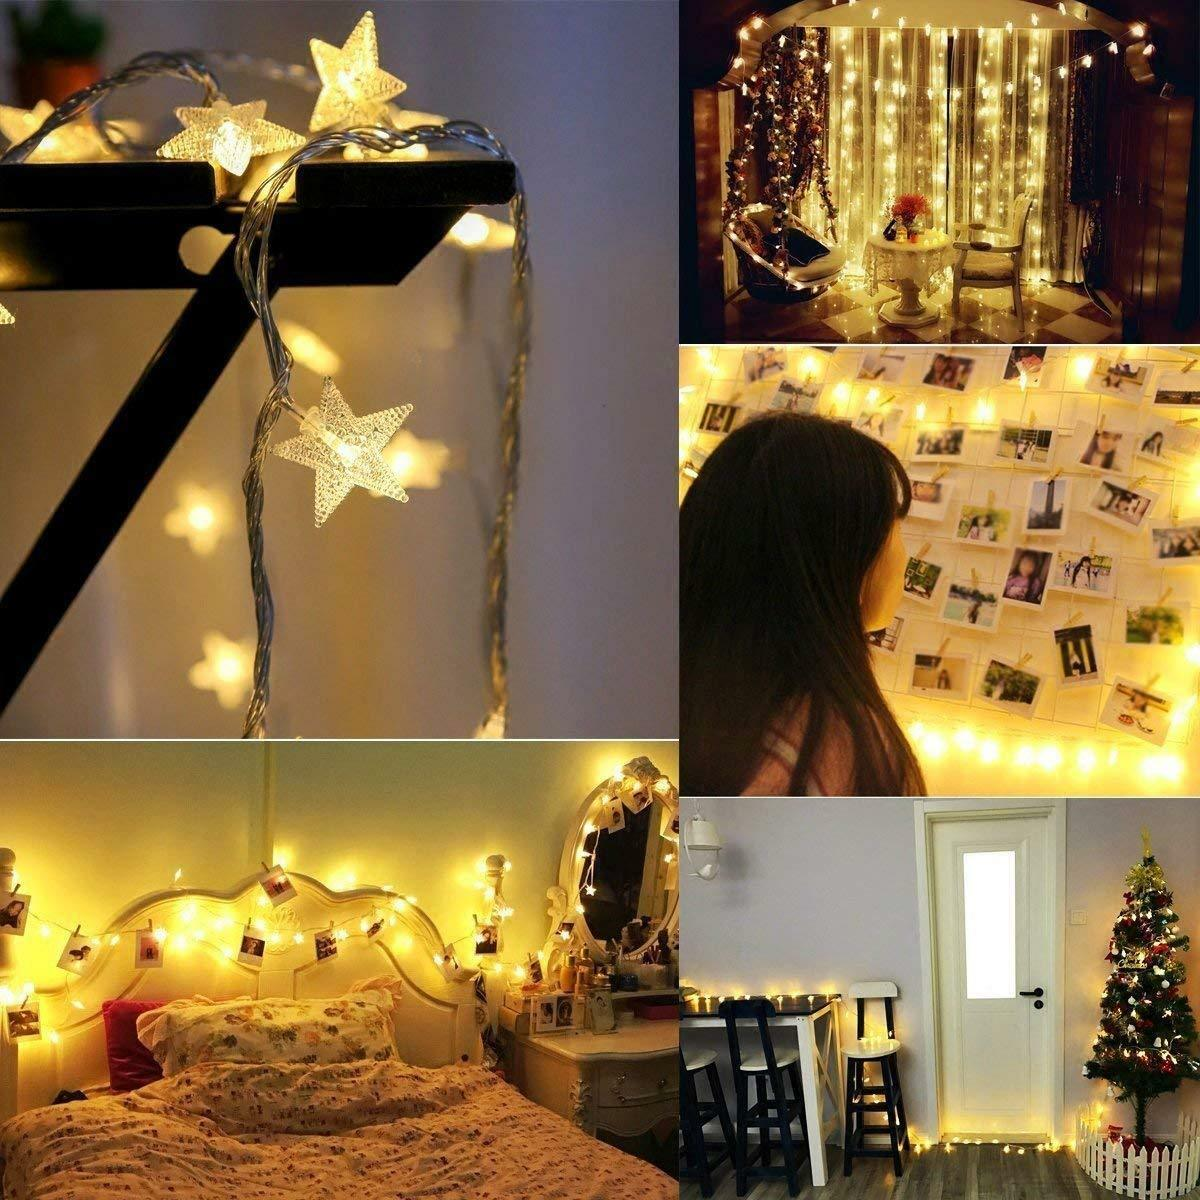 Star 40 Led Lights String Battery Operated Bedroom Xmas Fairy Lamp Home Decor